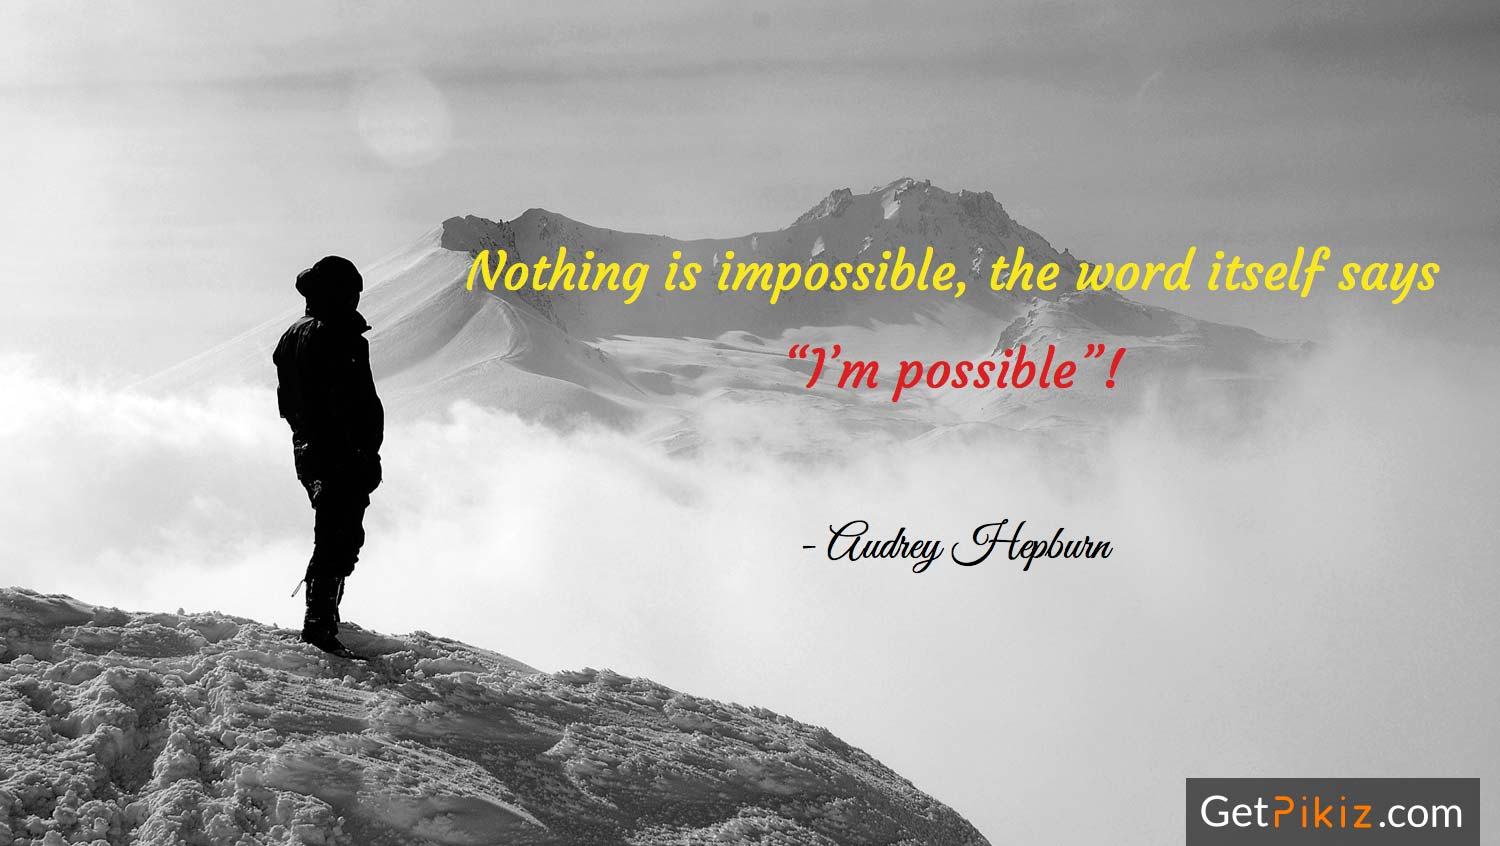 Nothing is impossible, the word itself says 'I'm possible'! - Audrey Hepburn